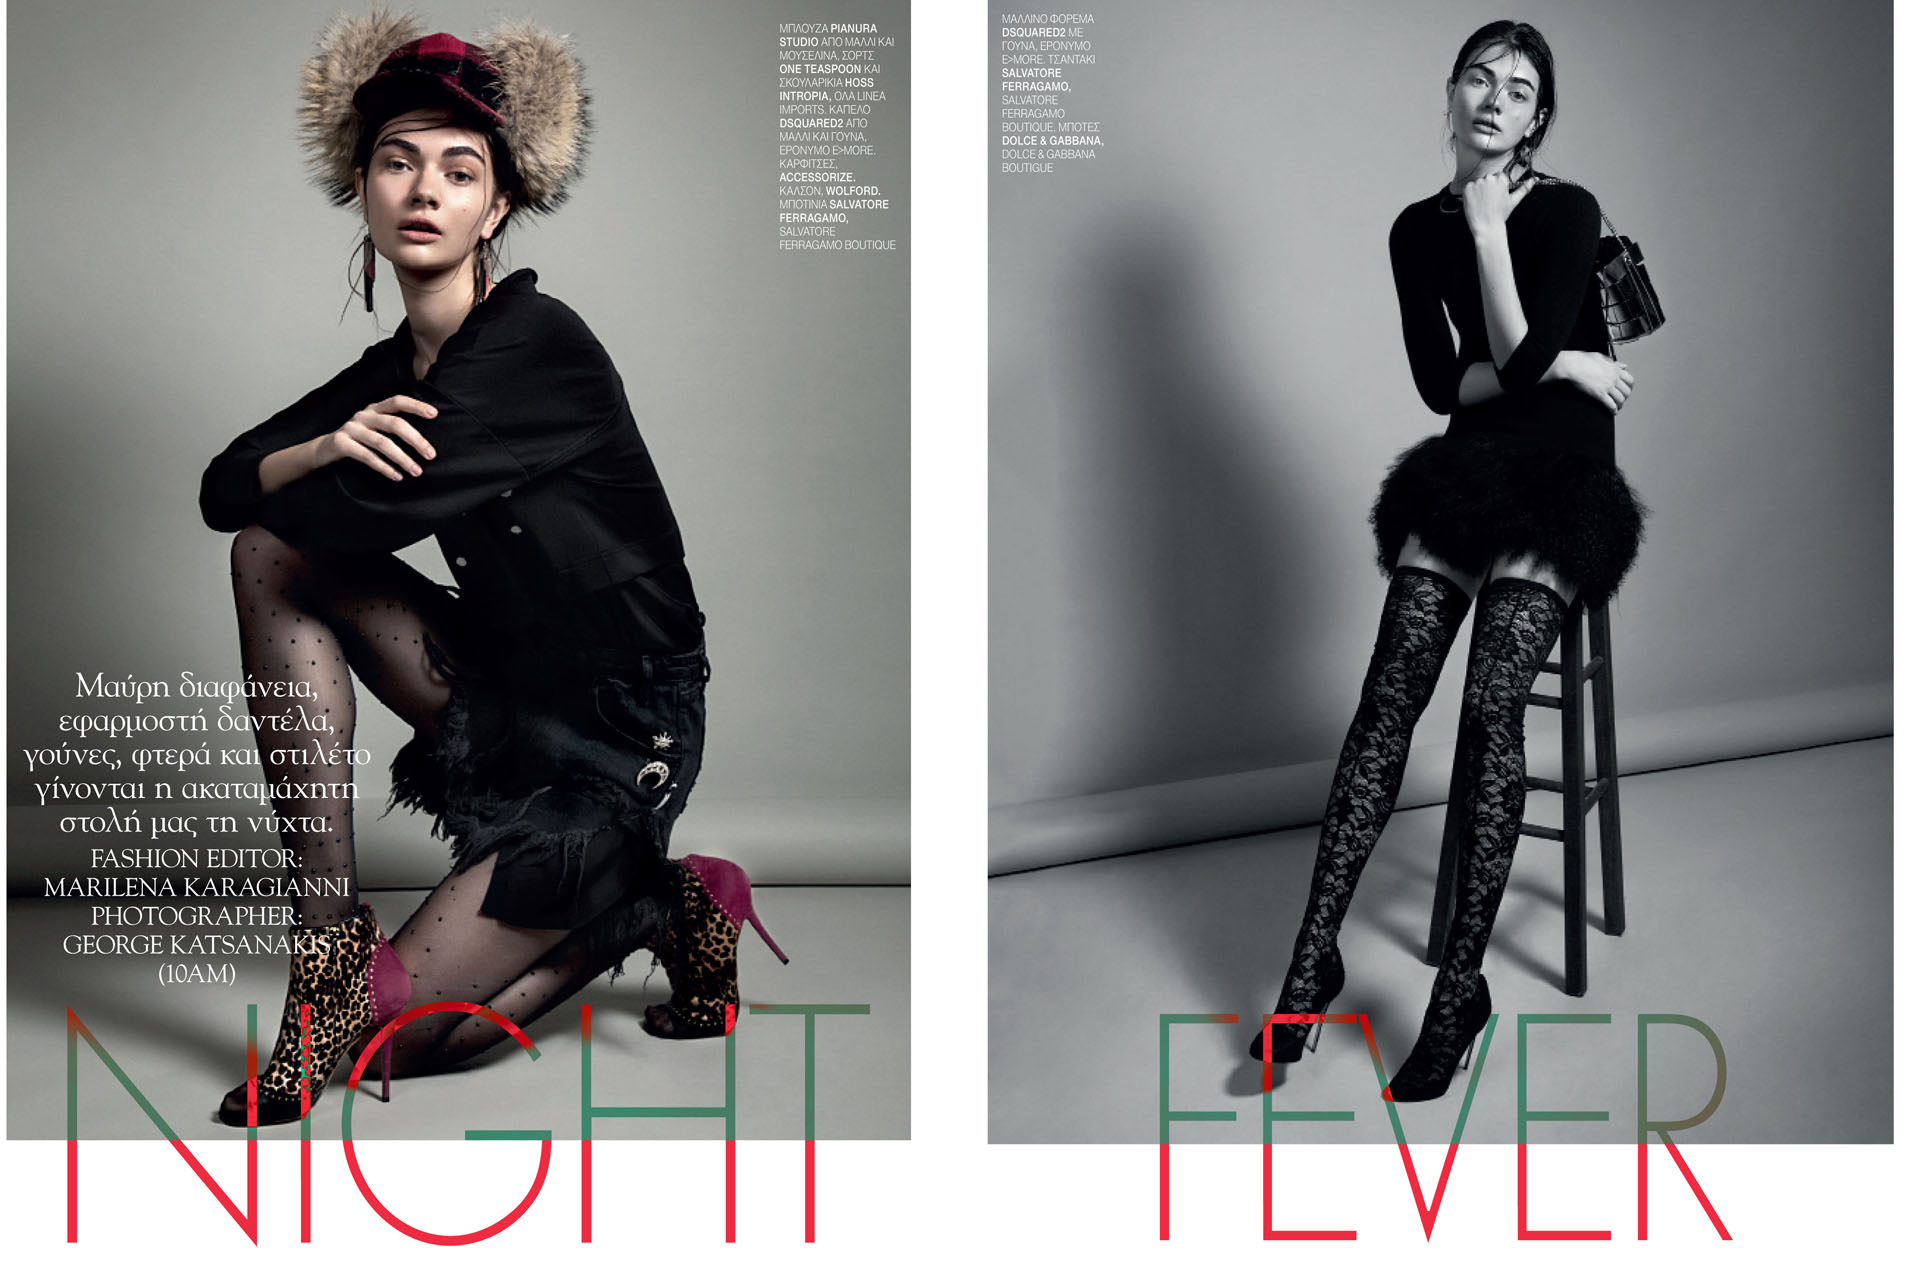 Antonina Vasylchenko got the night fever for Marie Claire.